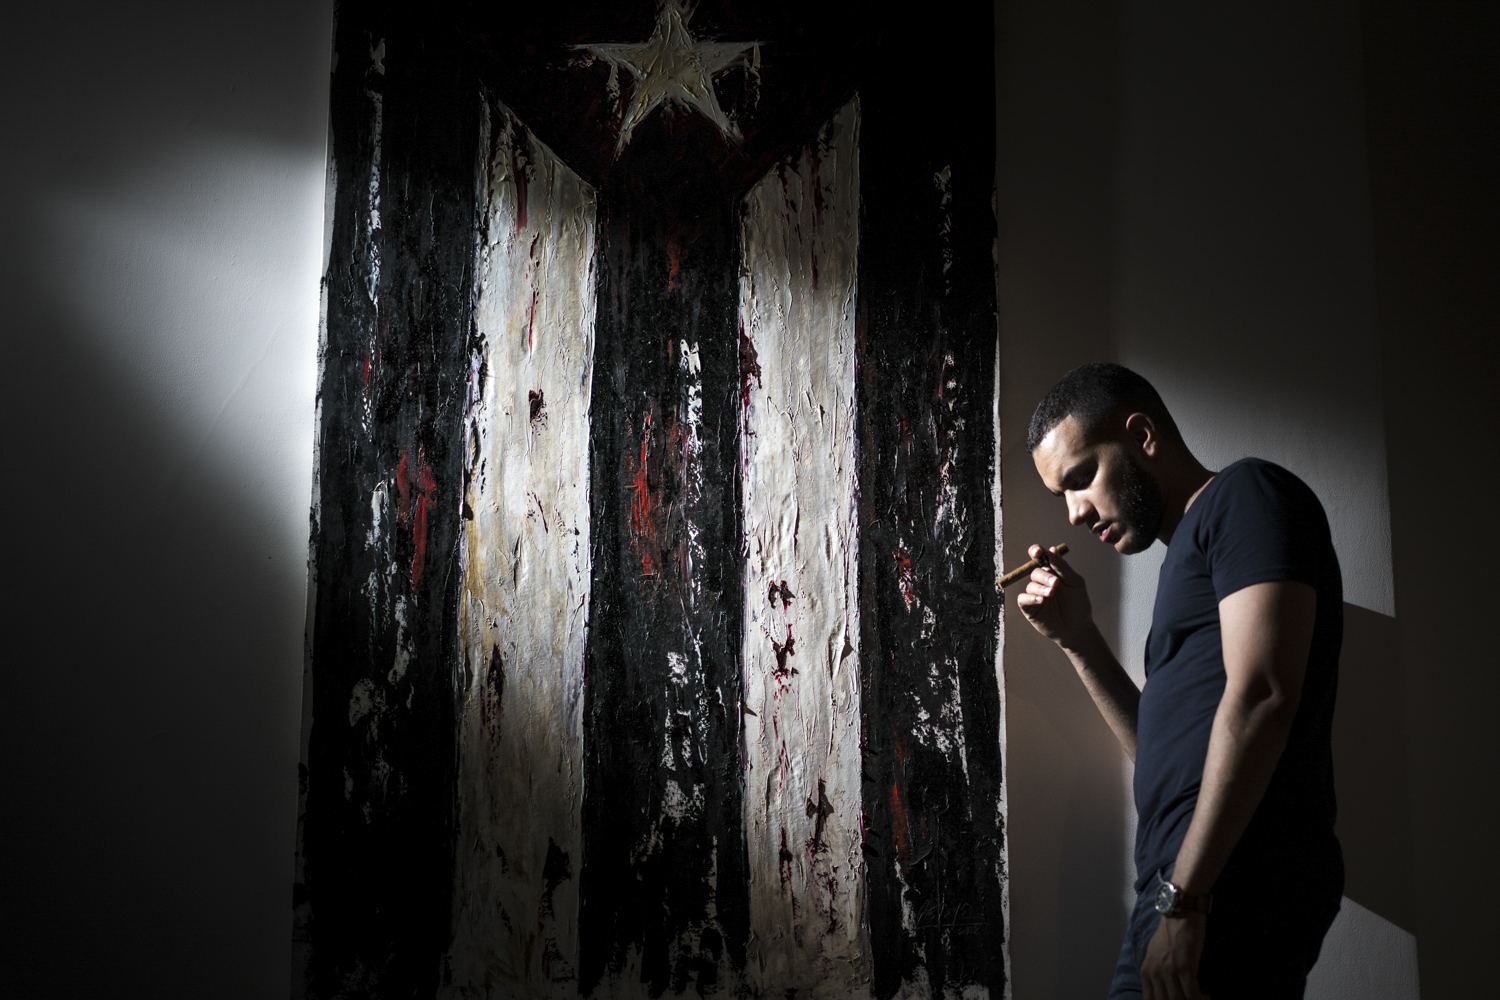 cuban flag portrait austin paz